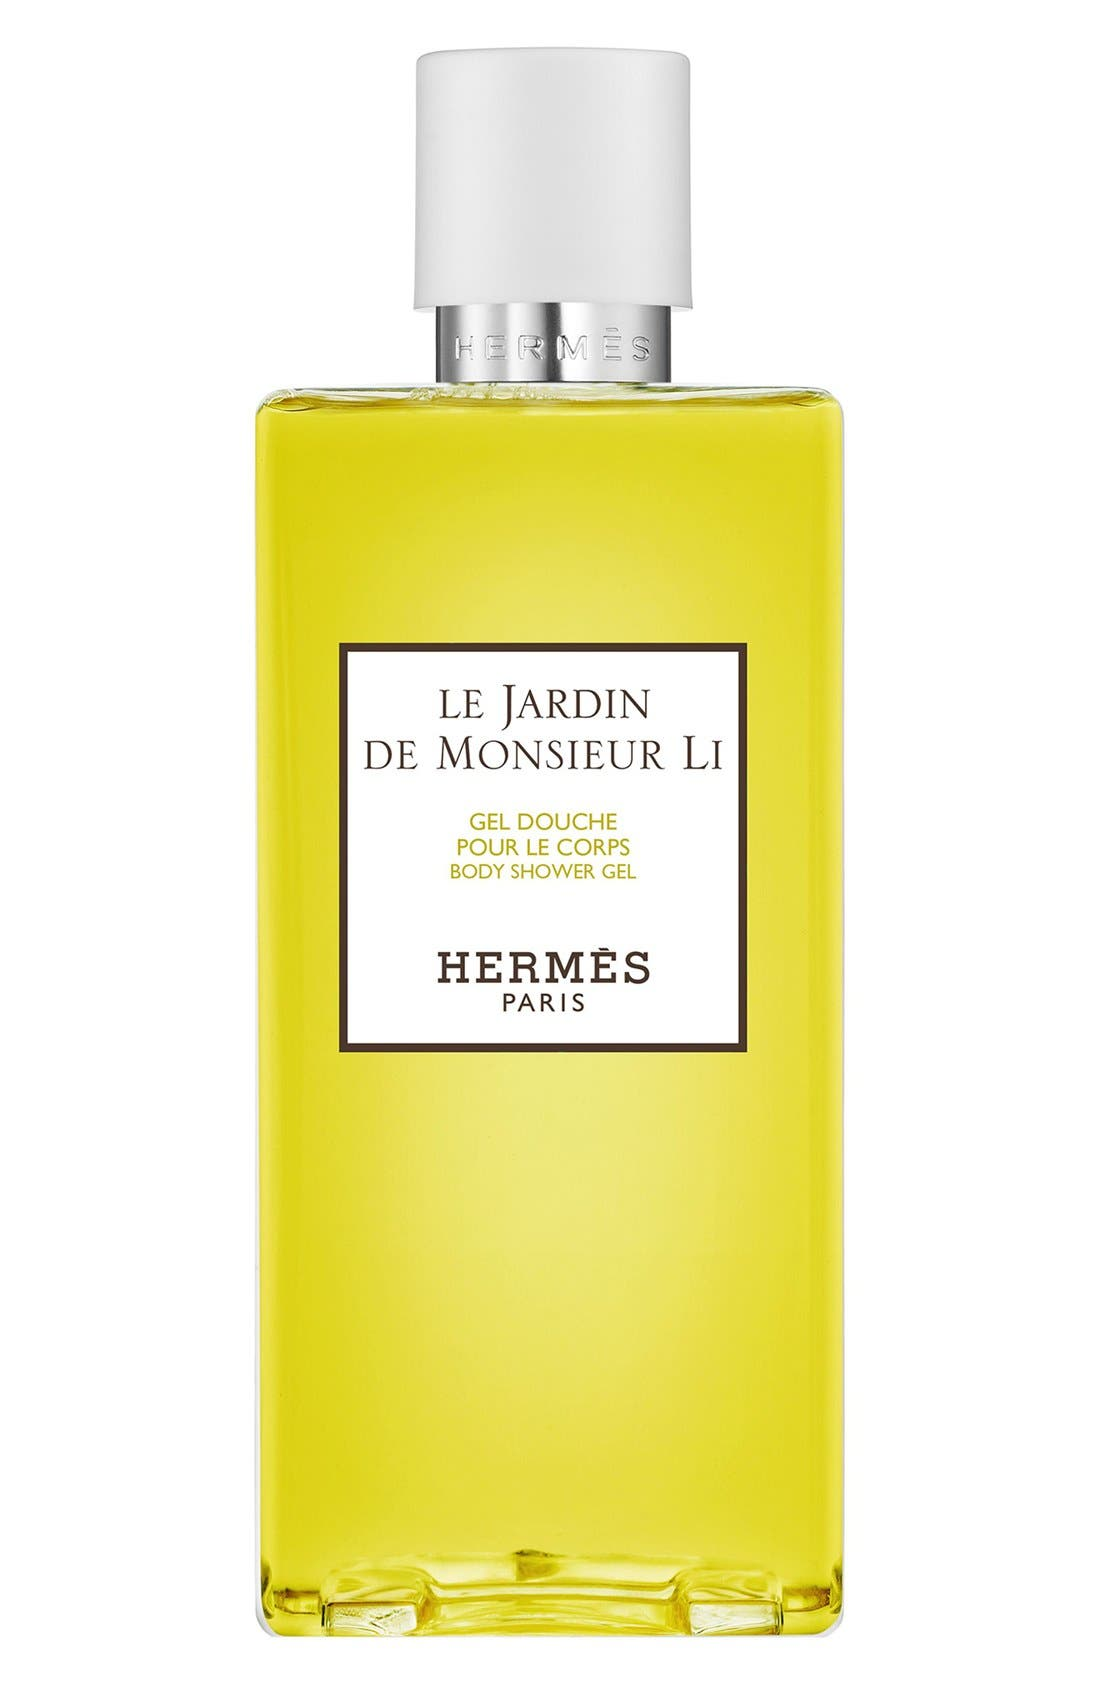 Le Jardin de Monsieur Li - Shower gel,                         Main,                         color, NO COLOR